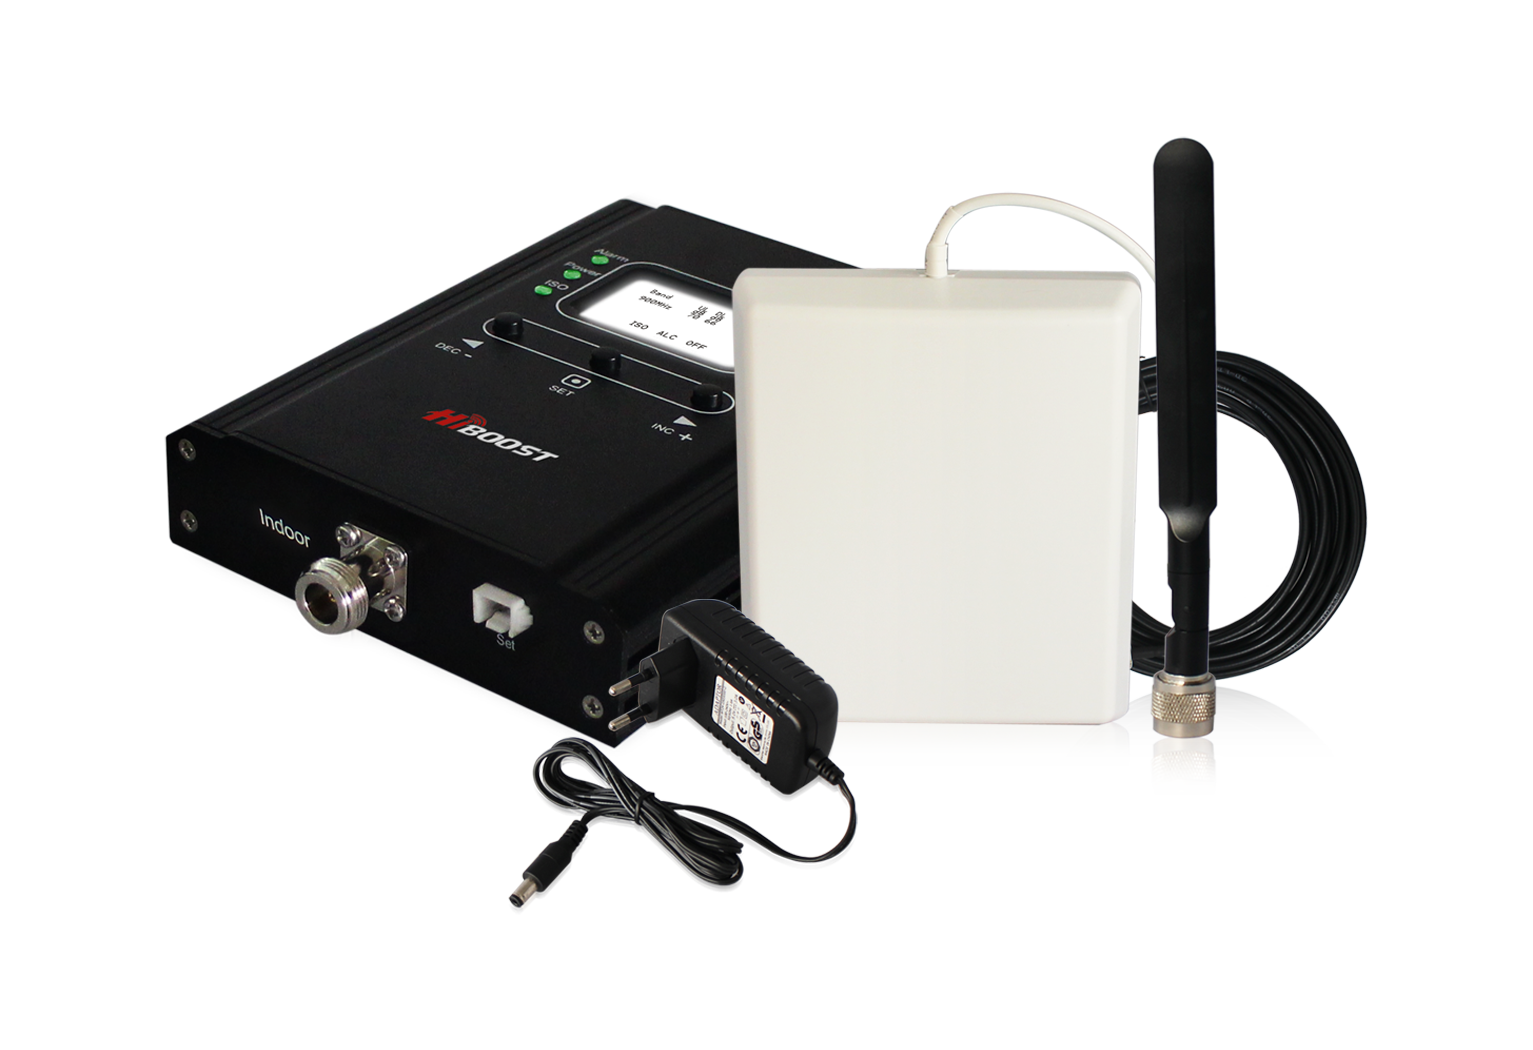 3G Signal Booster Repeater Boosts Three Home Signal - EMEA HOME SIGNAL BOOSTER - Cell Phone ...